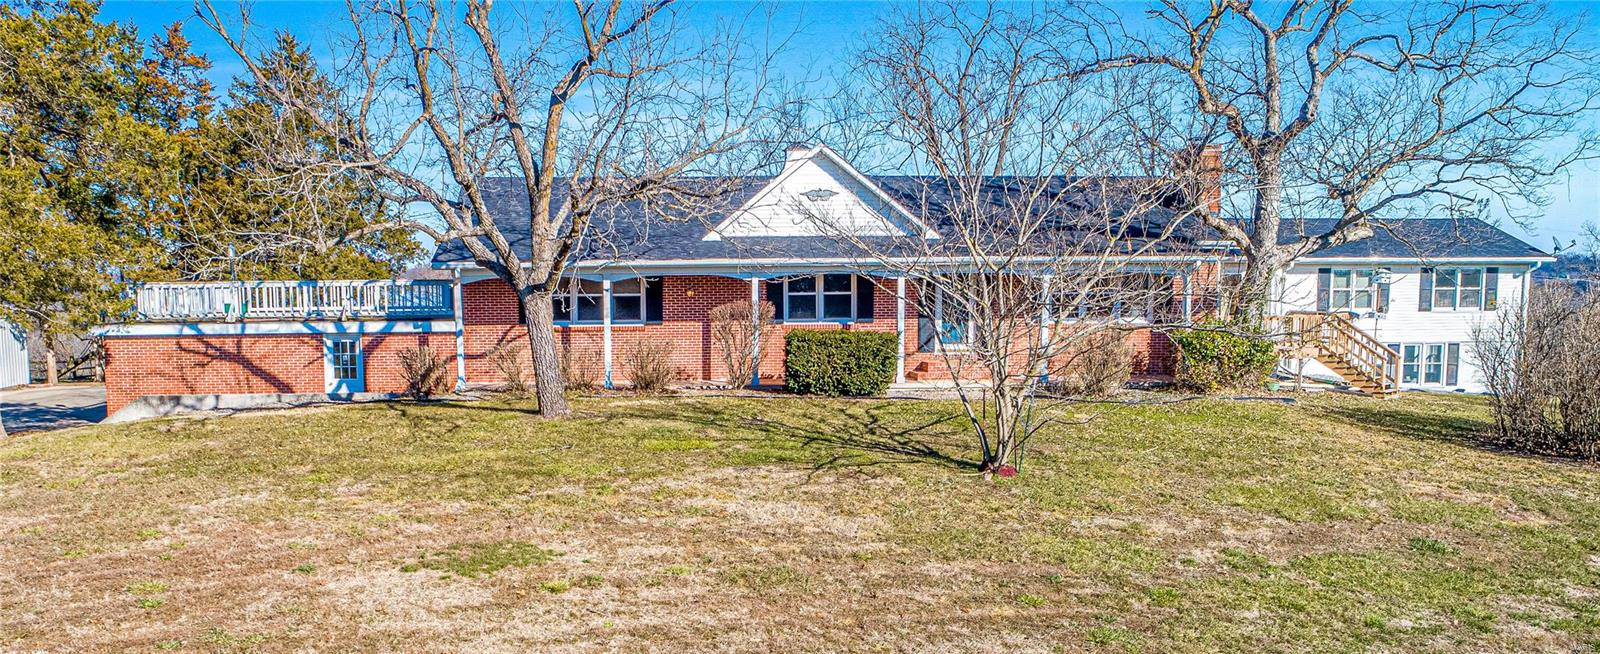 24608 Highway 87 Property Photo - California, MO real estate listing